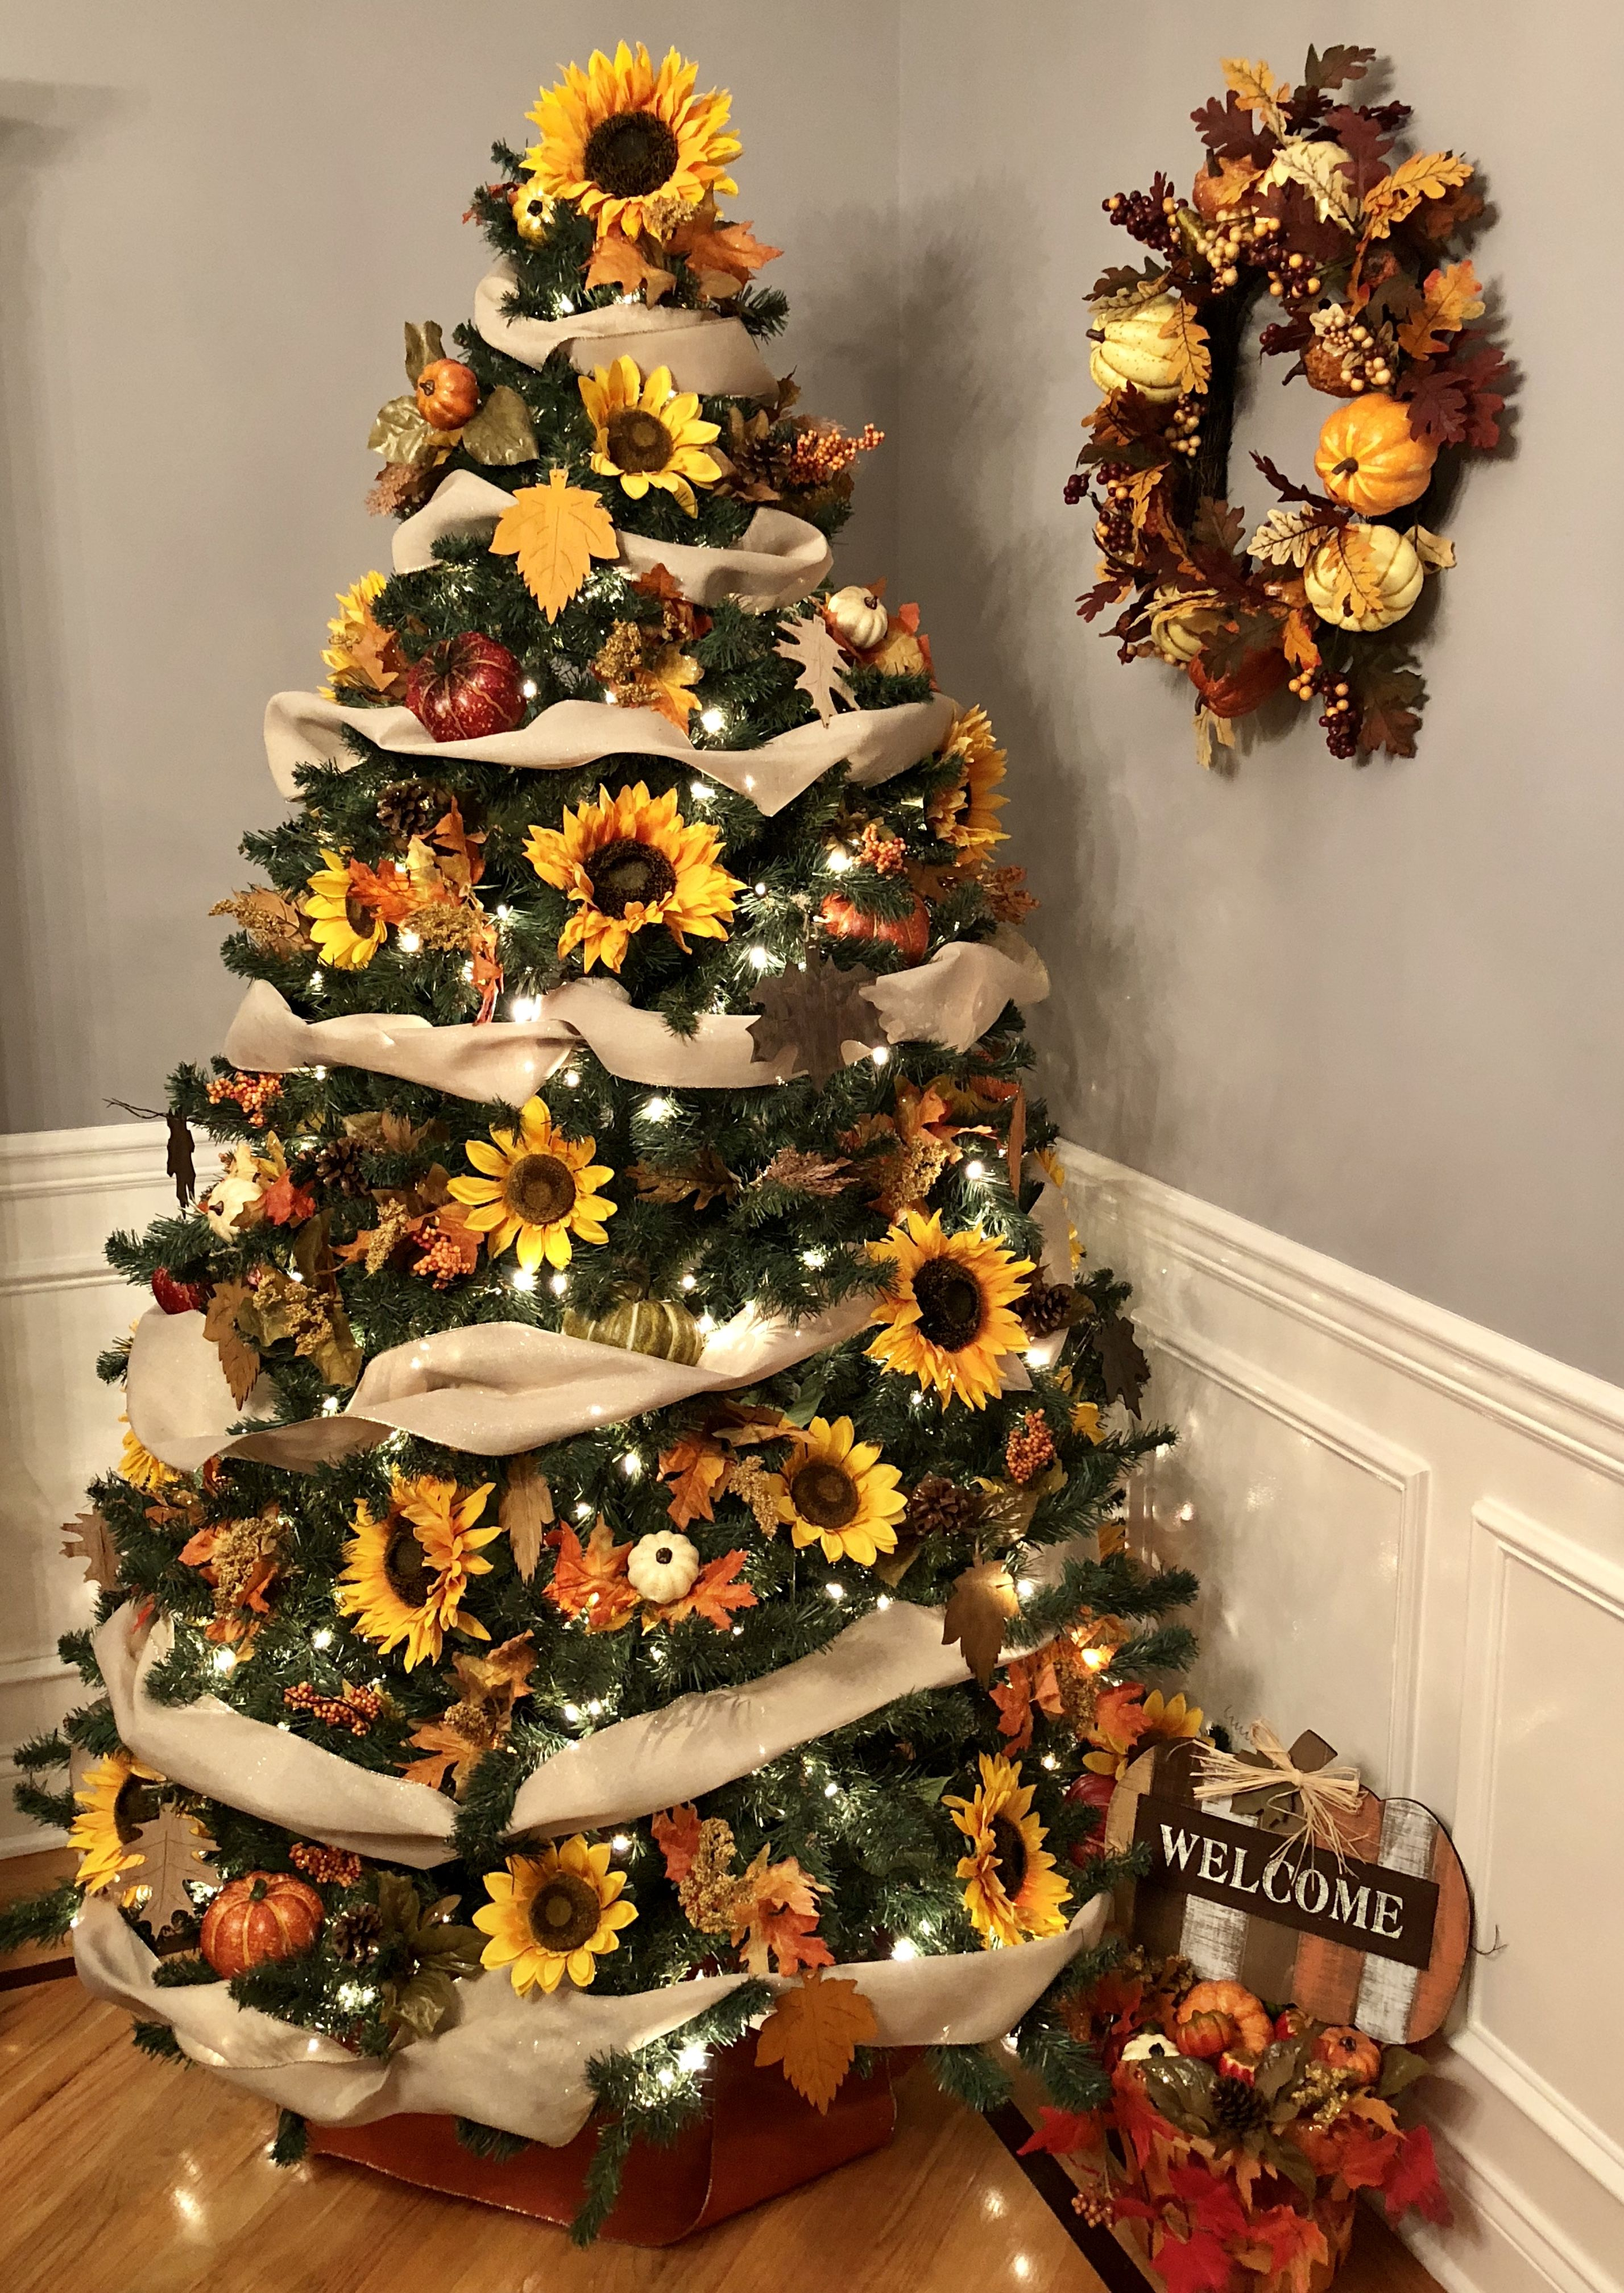 Christmas tree decorated with sunflowers, fall leaves